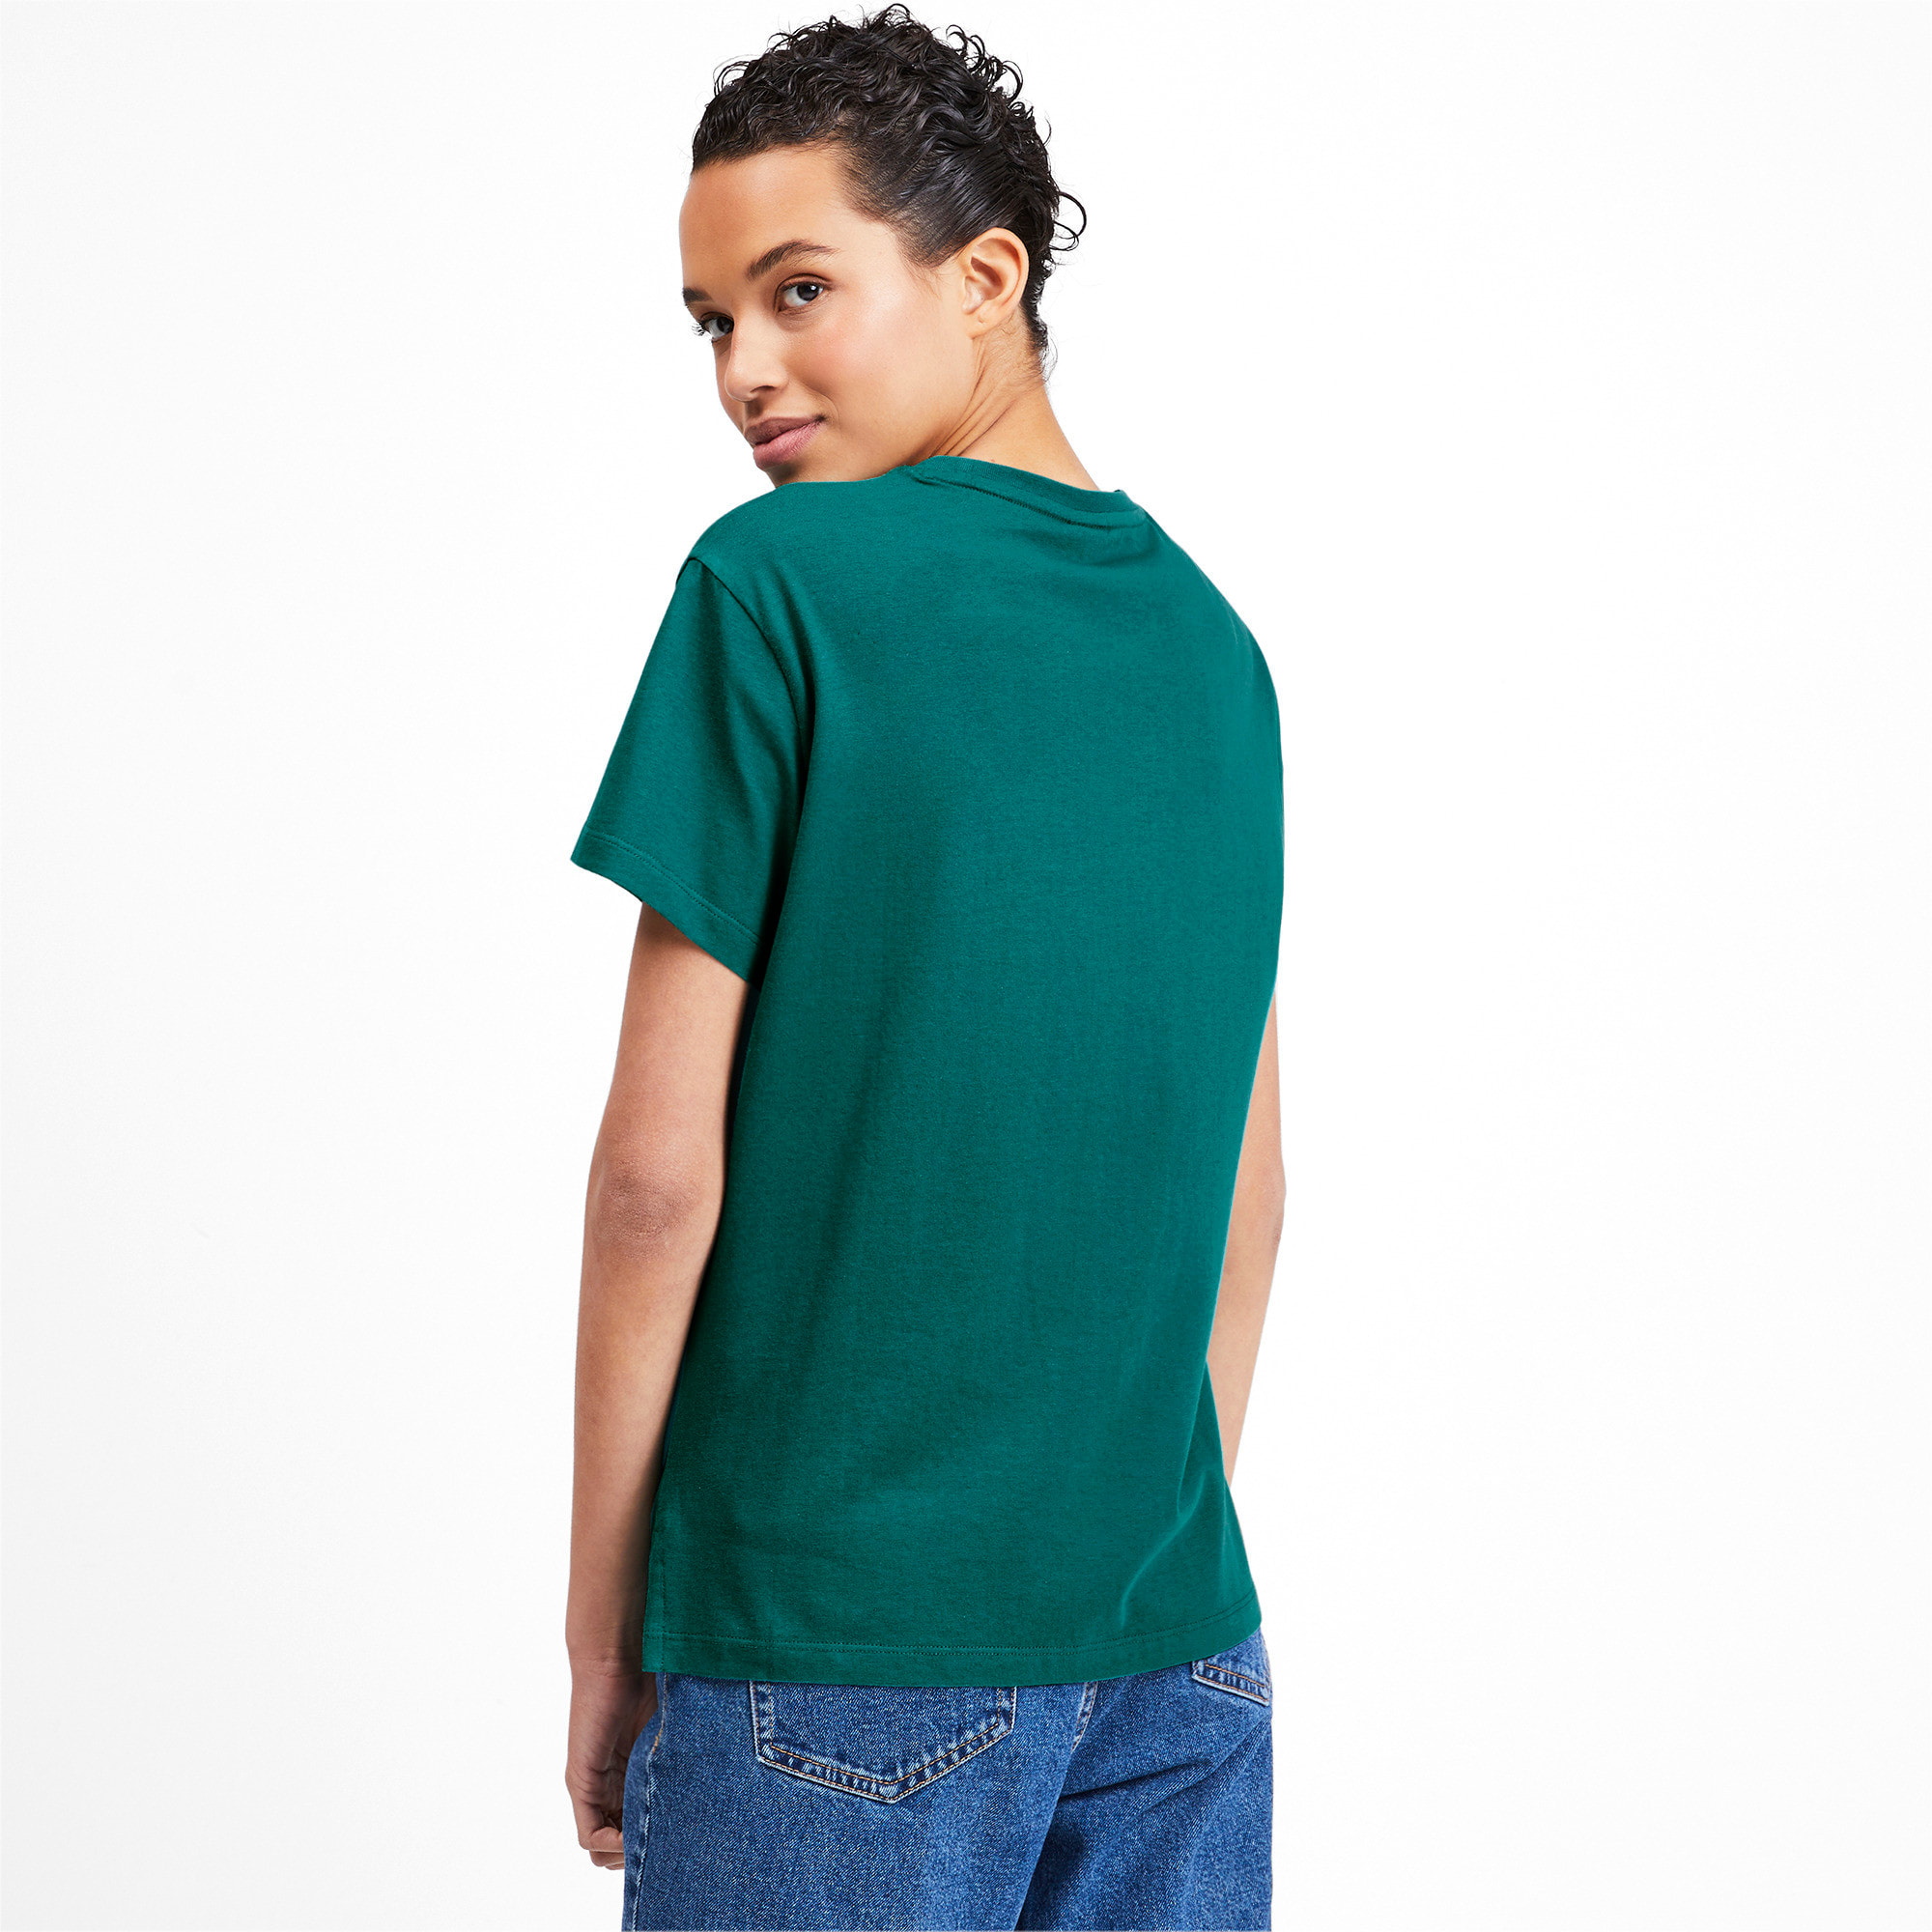 Thumbnail 2 of Classics Women's Logo Tee, Teal Green, medium